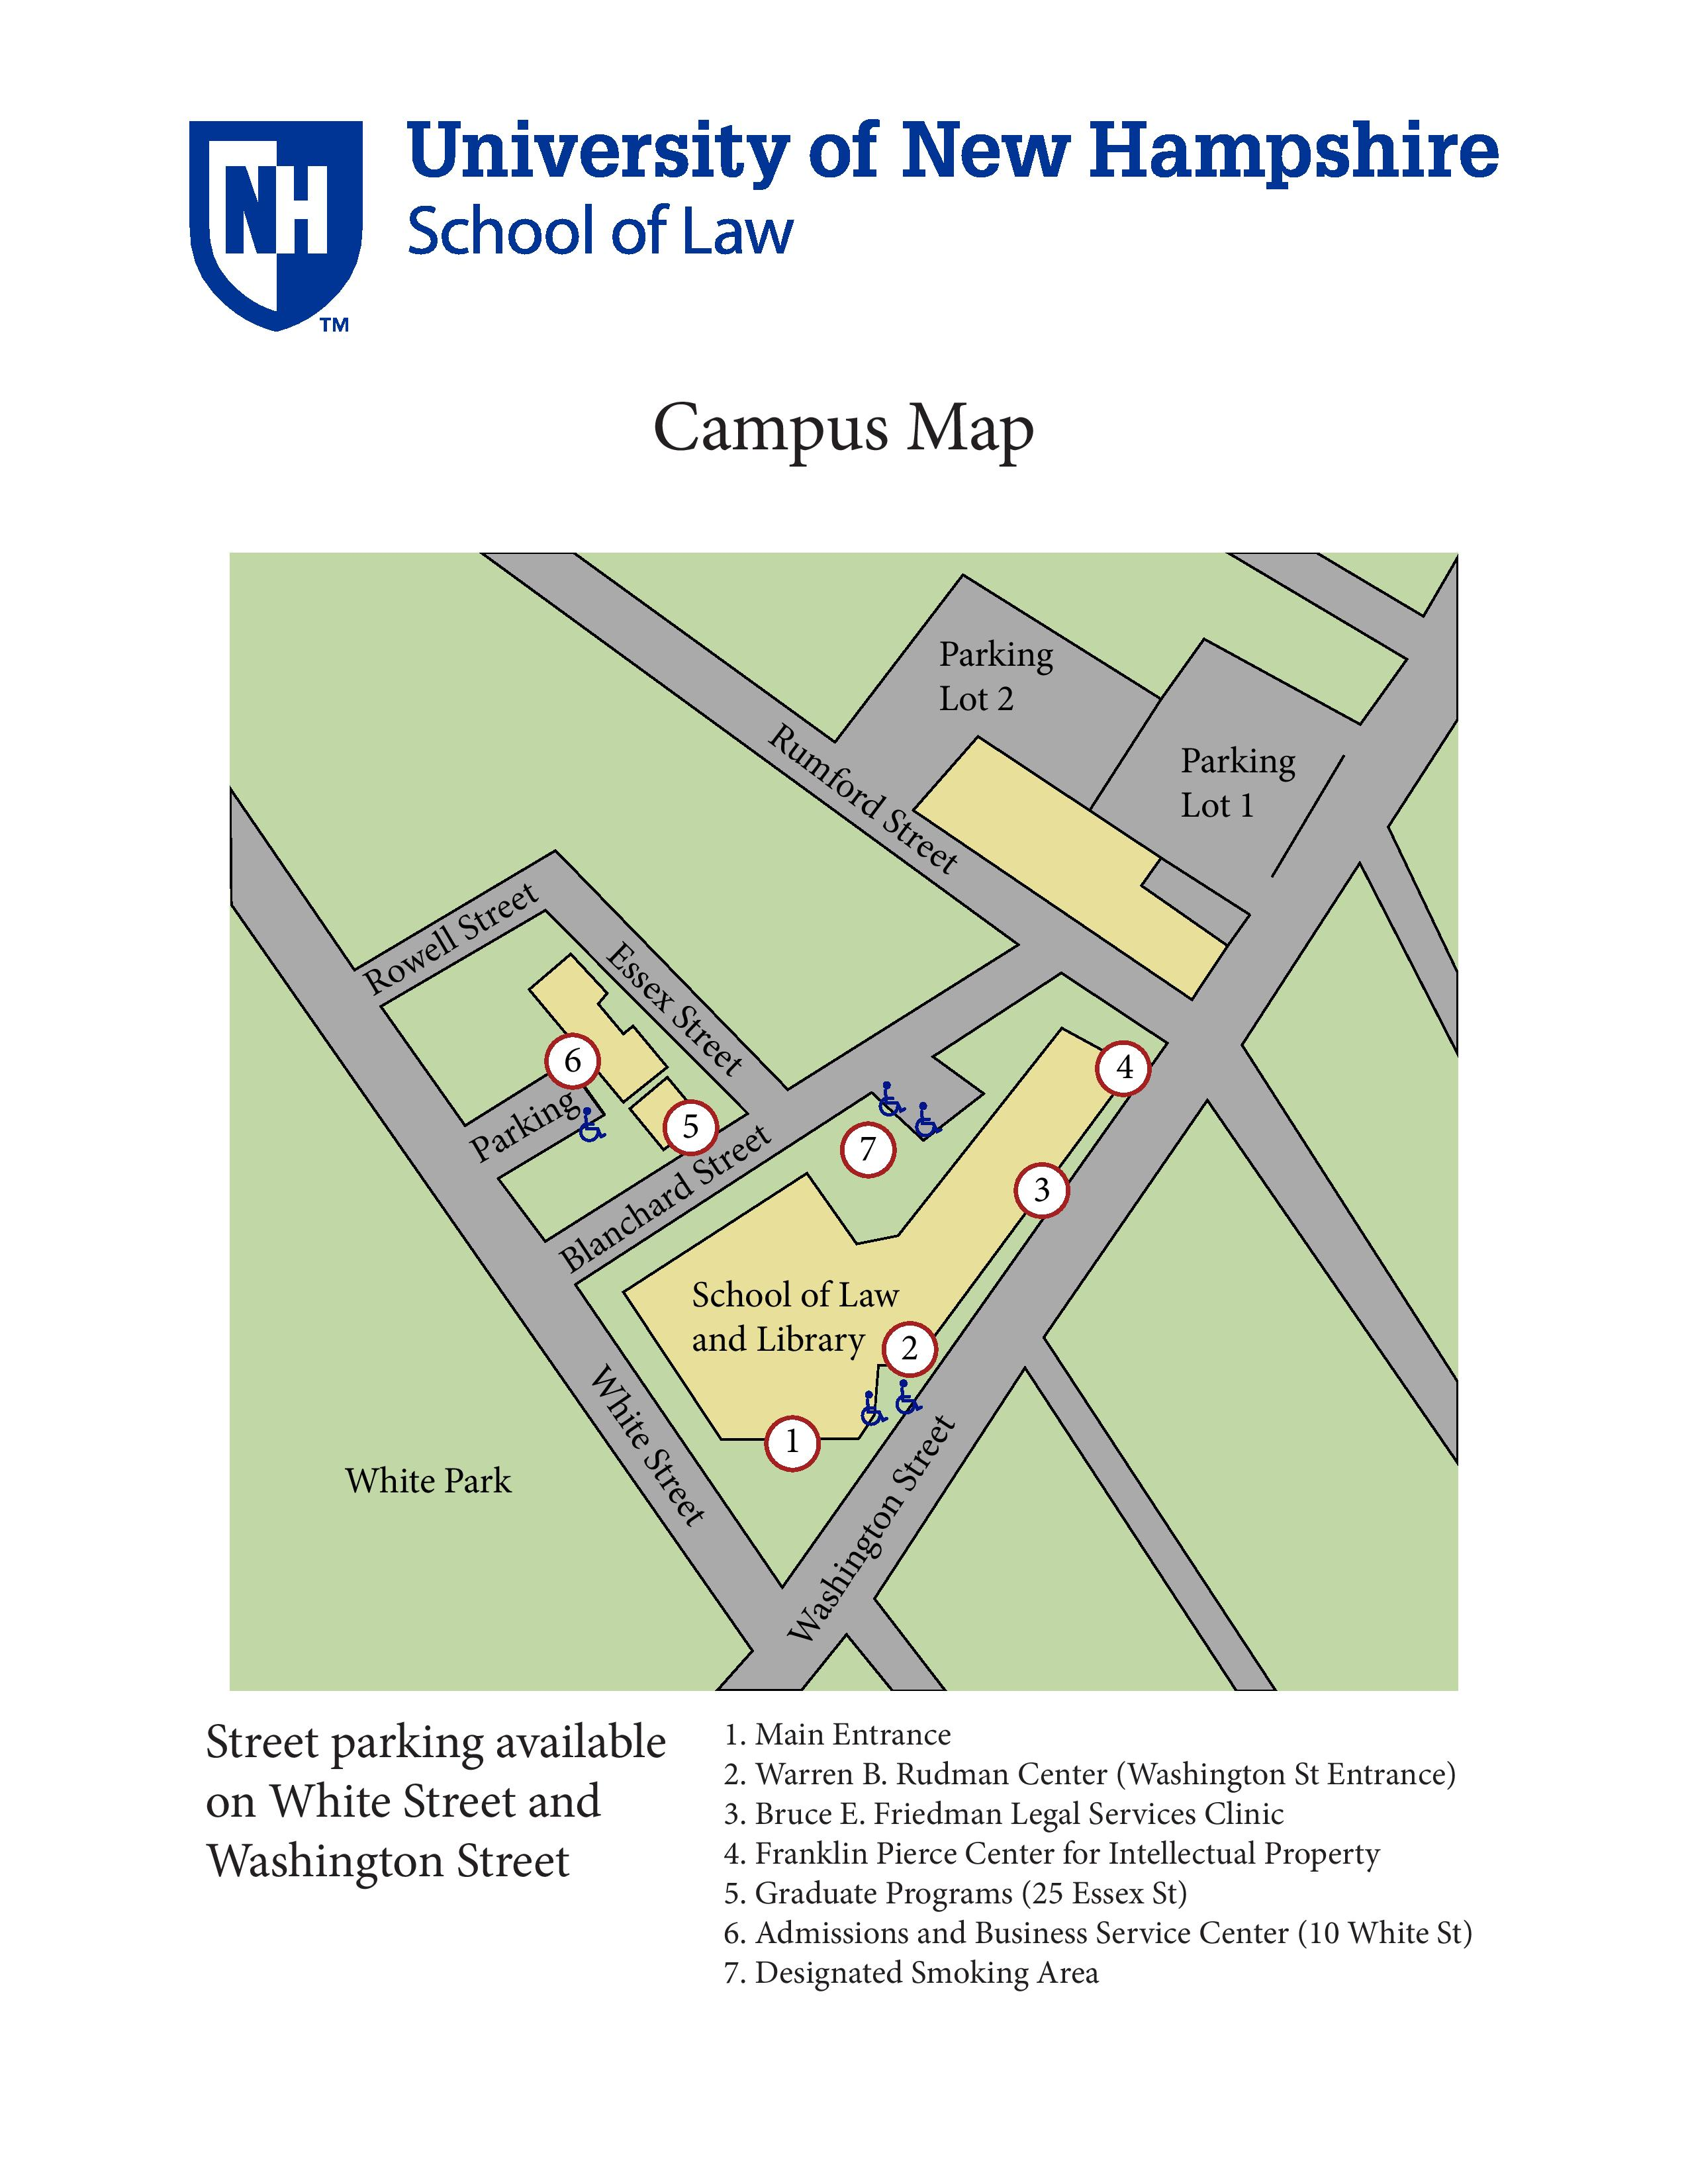 Campus map of UNH School of Law